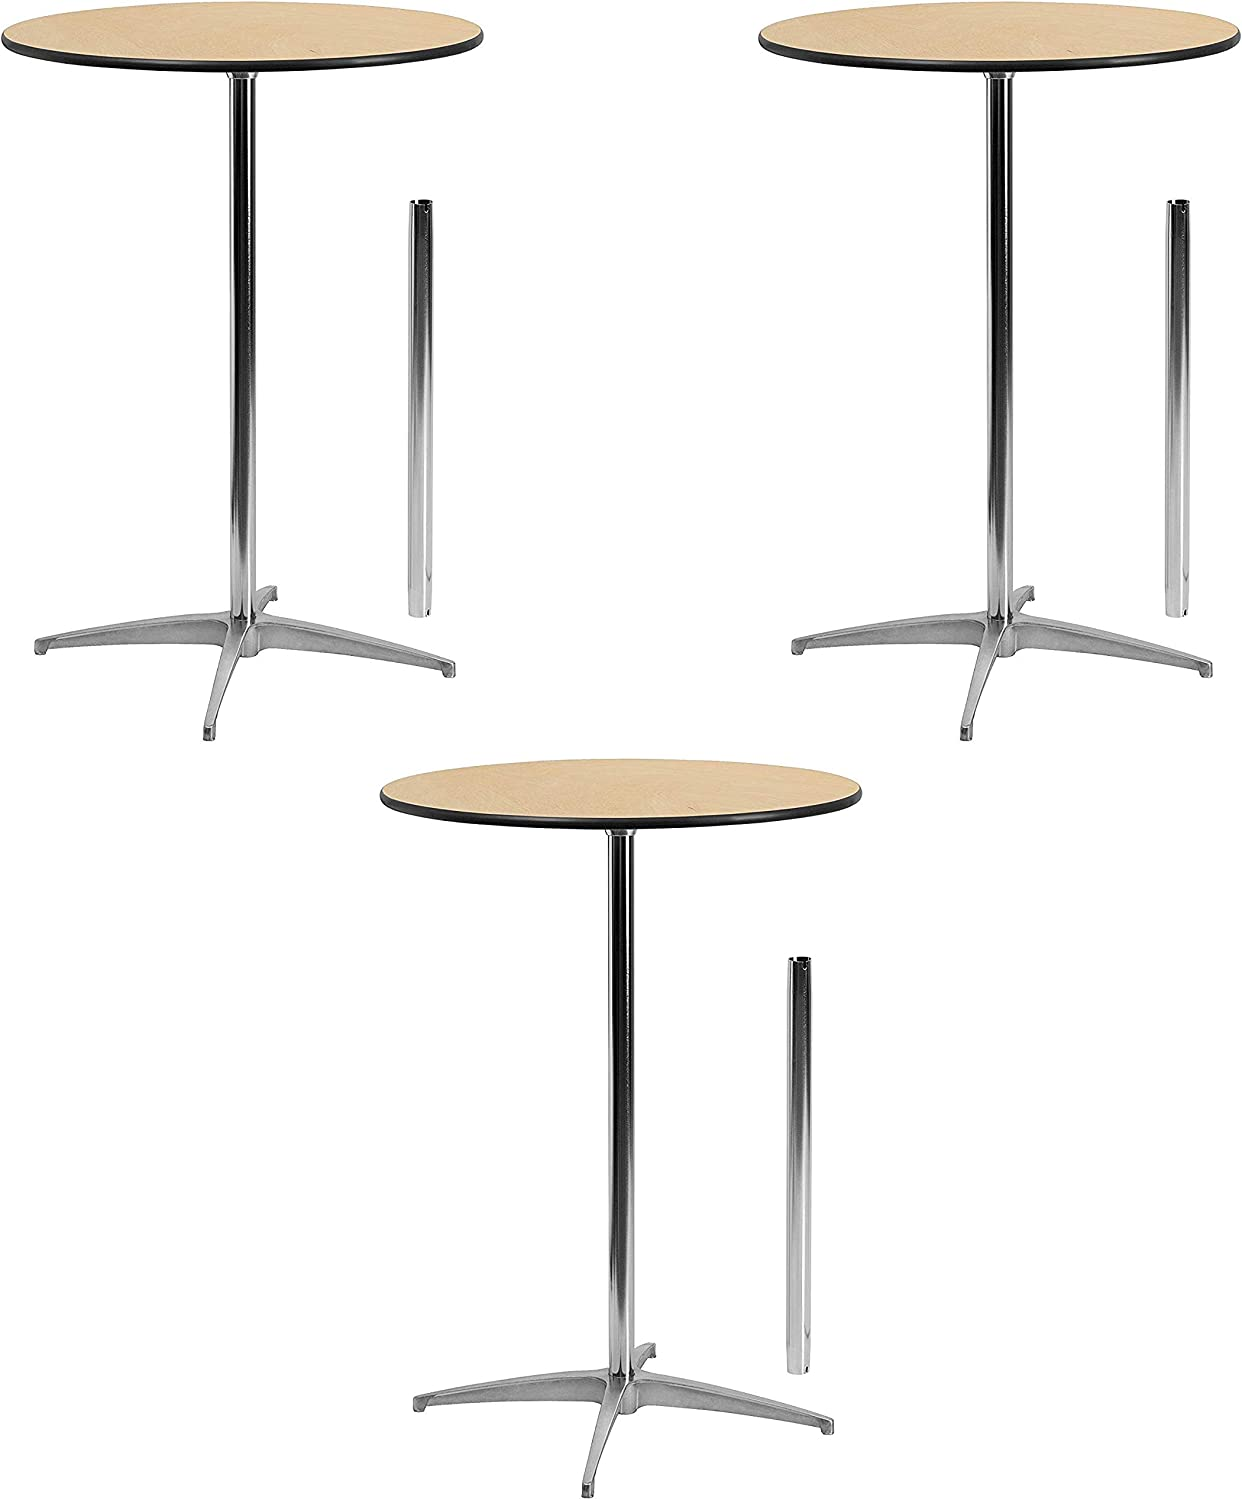 Flash Furniture 36'' Round Wood Cocktail Table with 30'' and 42'' Columns Set of 3 (30 inches)